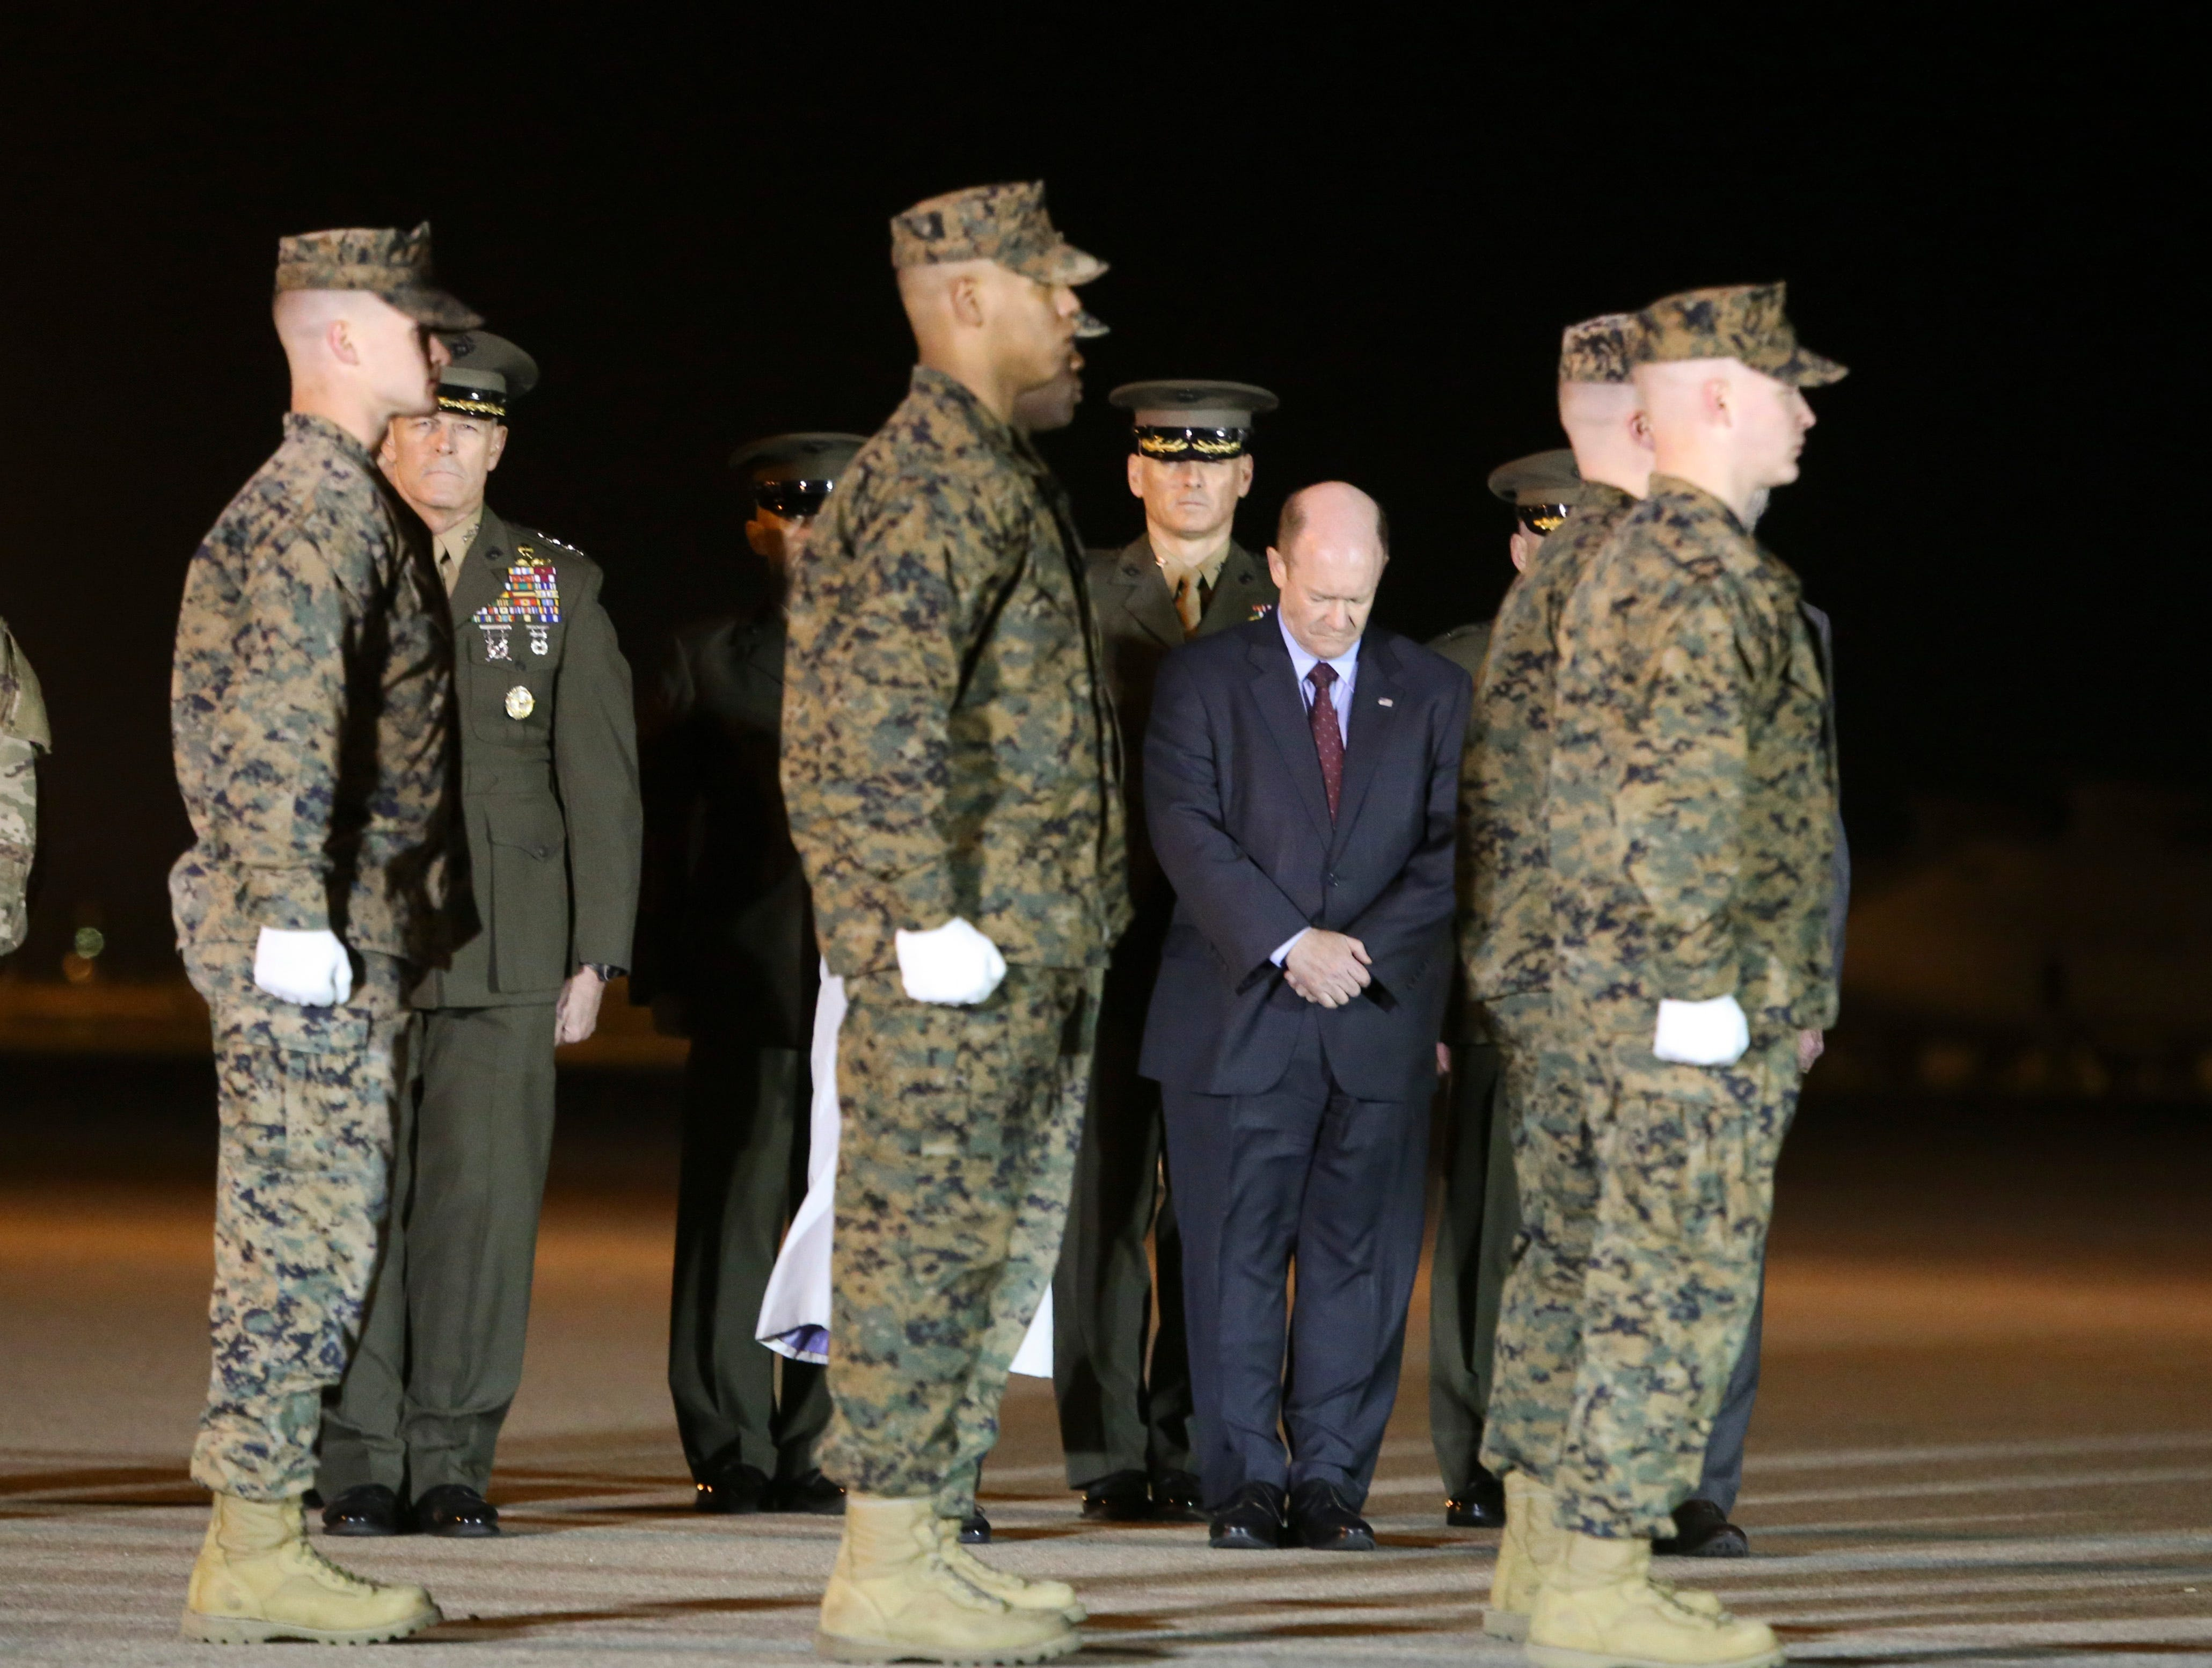 U.S. Senator Chris Coons (wearing suit), in attendance with the rest of the Delaware congressional delegation, bows in prayer as the remains of Staff Sgt. Christopher Slutman are transferred at Dover Air Force Base in a solemn process Thursday evening.